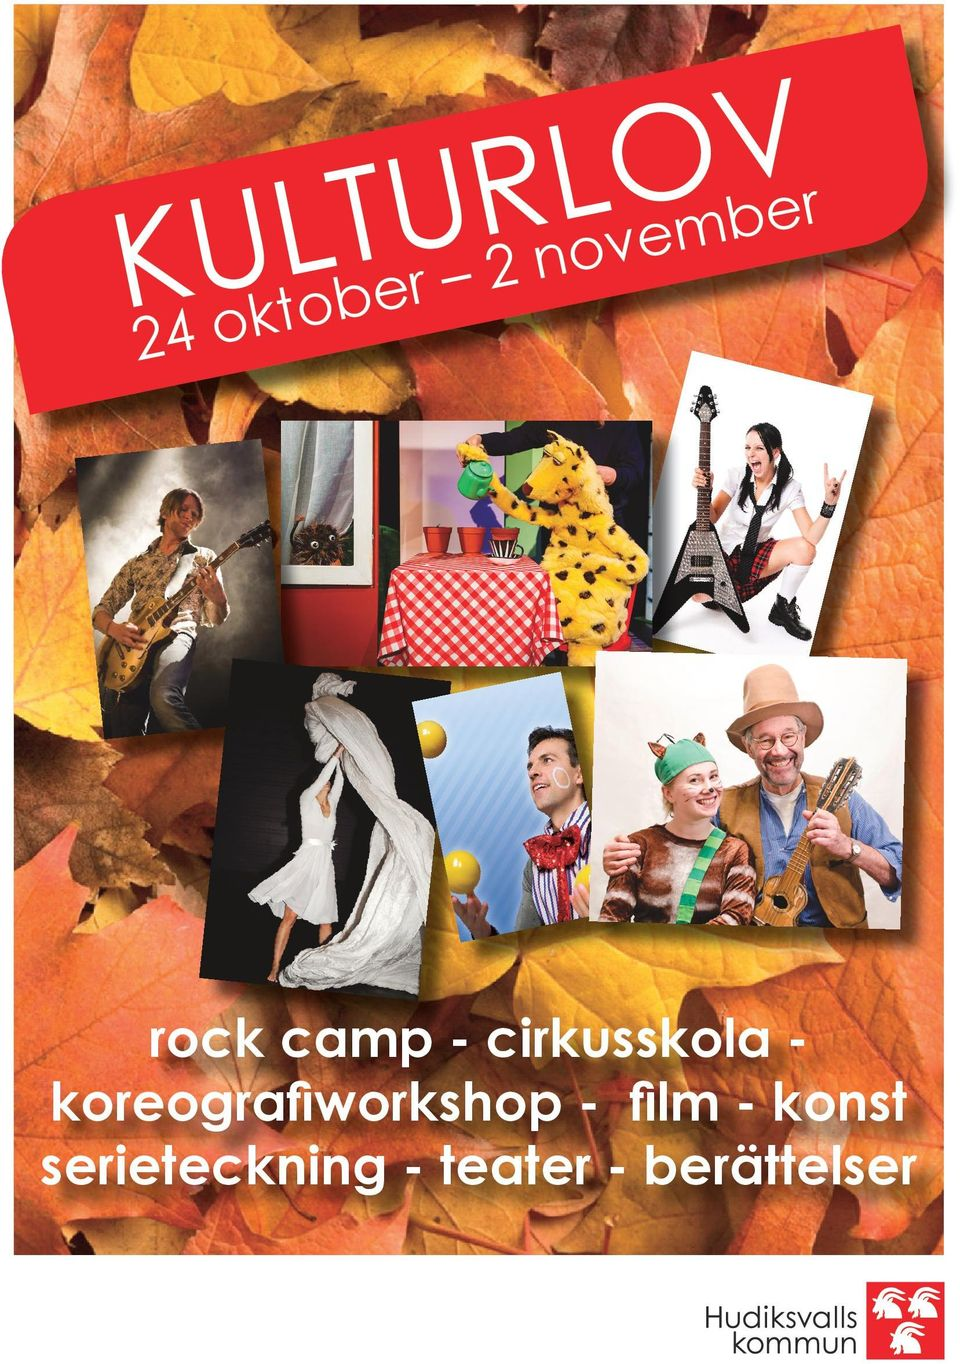 koreografiworkshop - film - konst